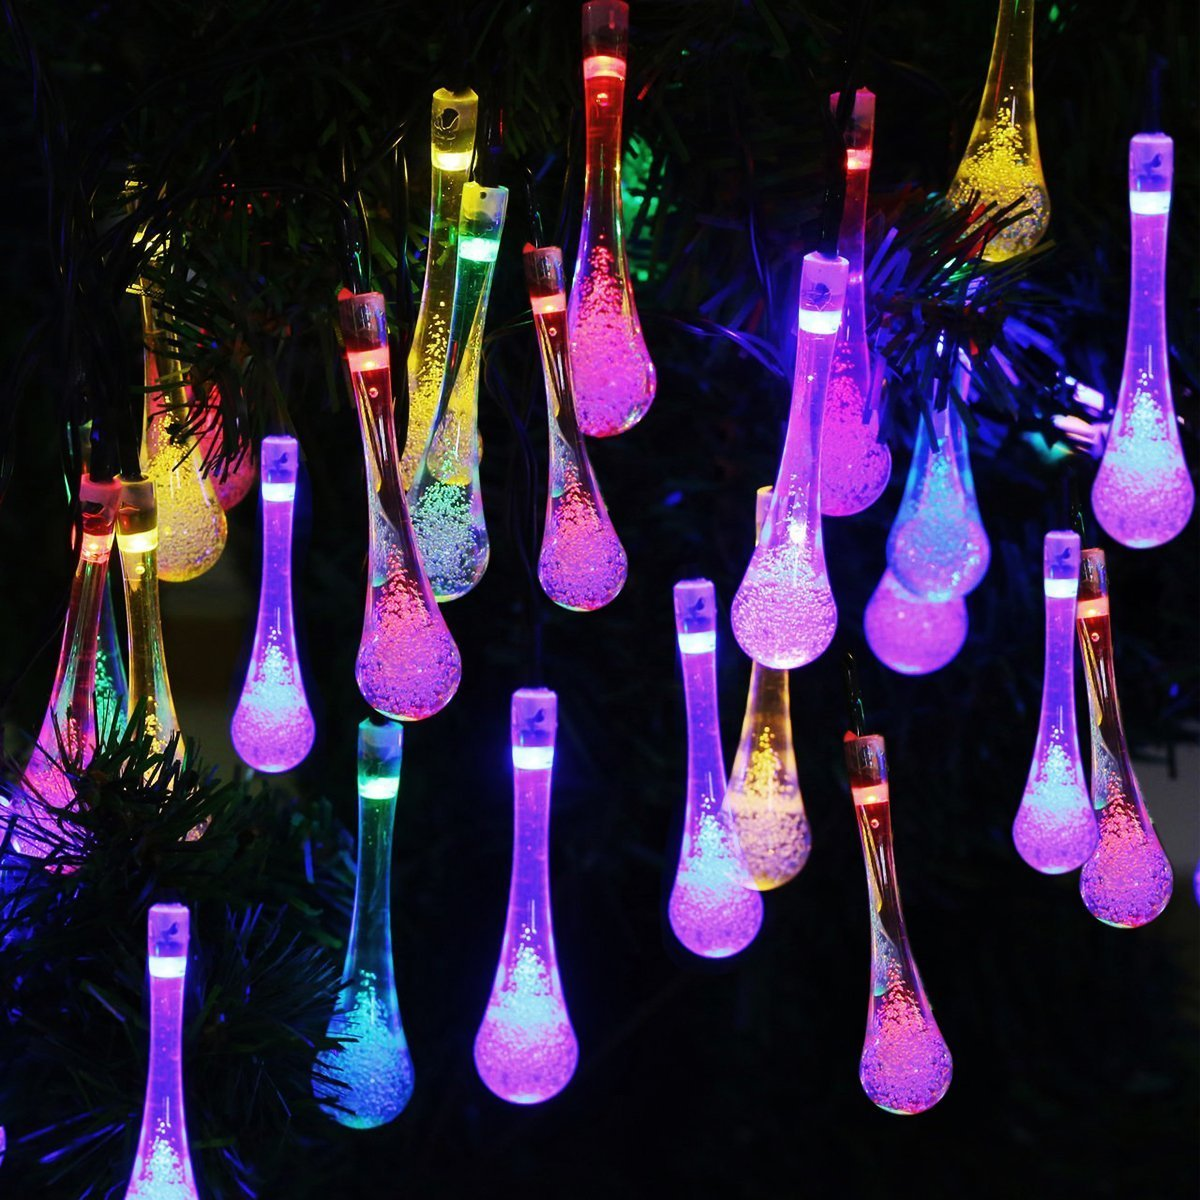 Vmanoo Christmas Decorative Solar Powered Lights, 30LED 19.7ft 8Modes Water drop Fairy String light for Outdoor, Indoor, Home, Patio, Lawn, Garden, Party, Wedding, Gift,Waterproof 2 PACK (Multi-color)